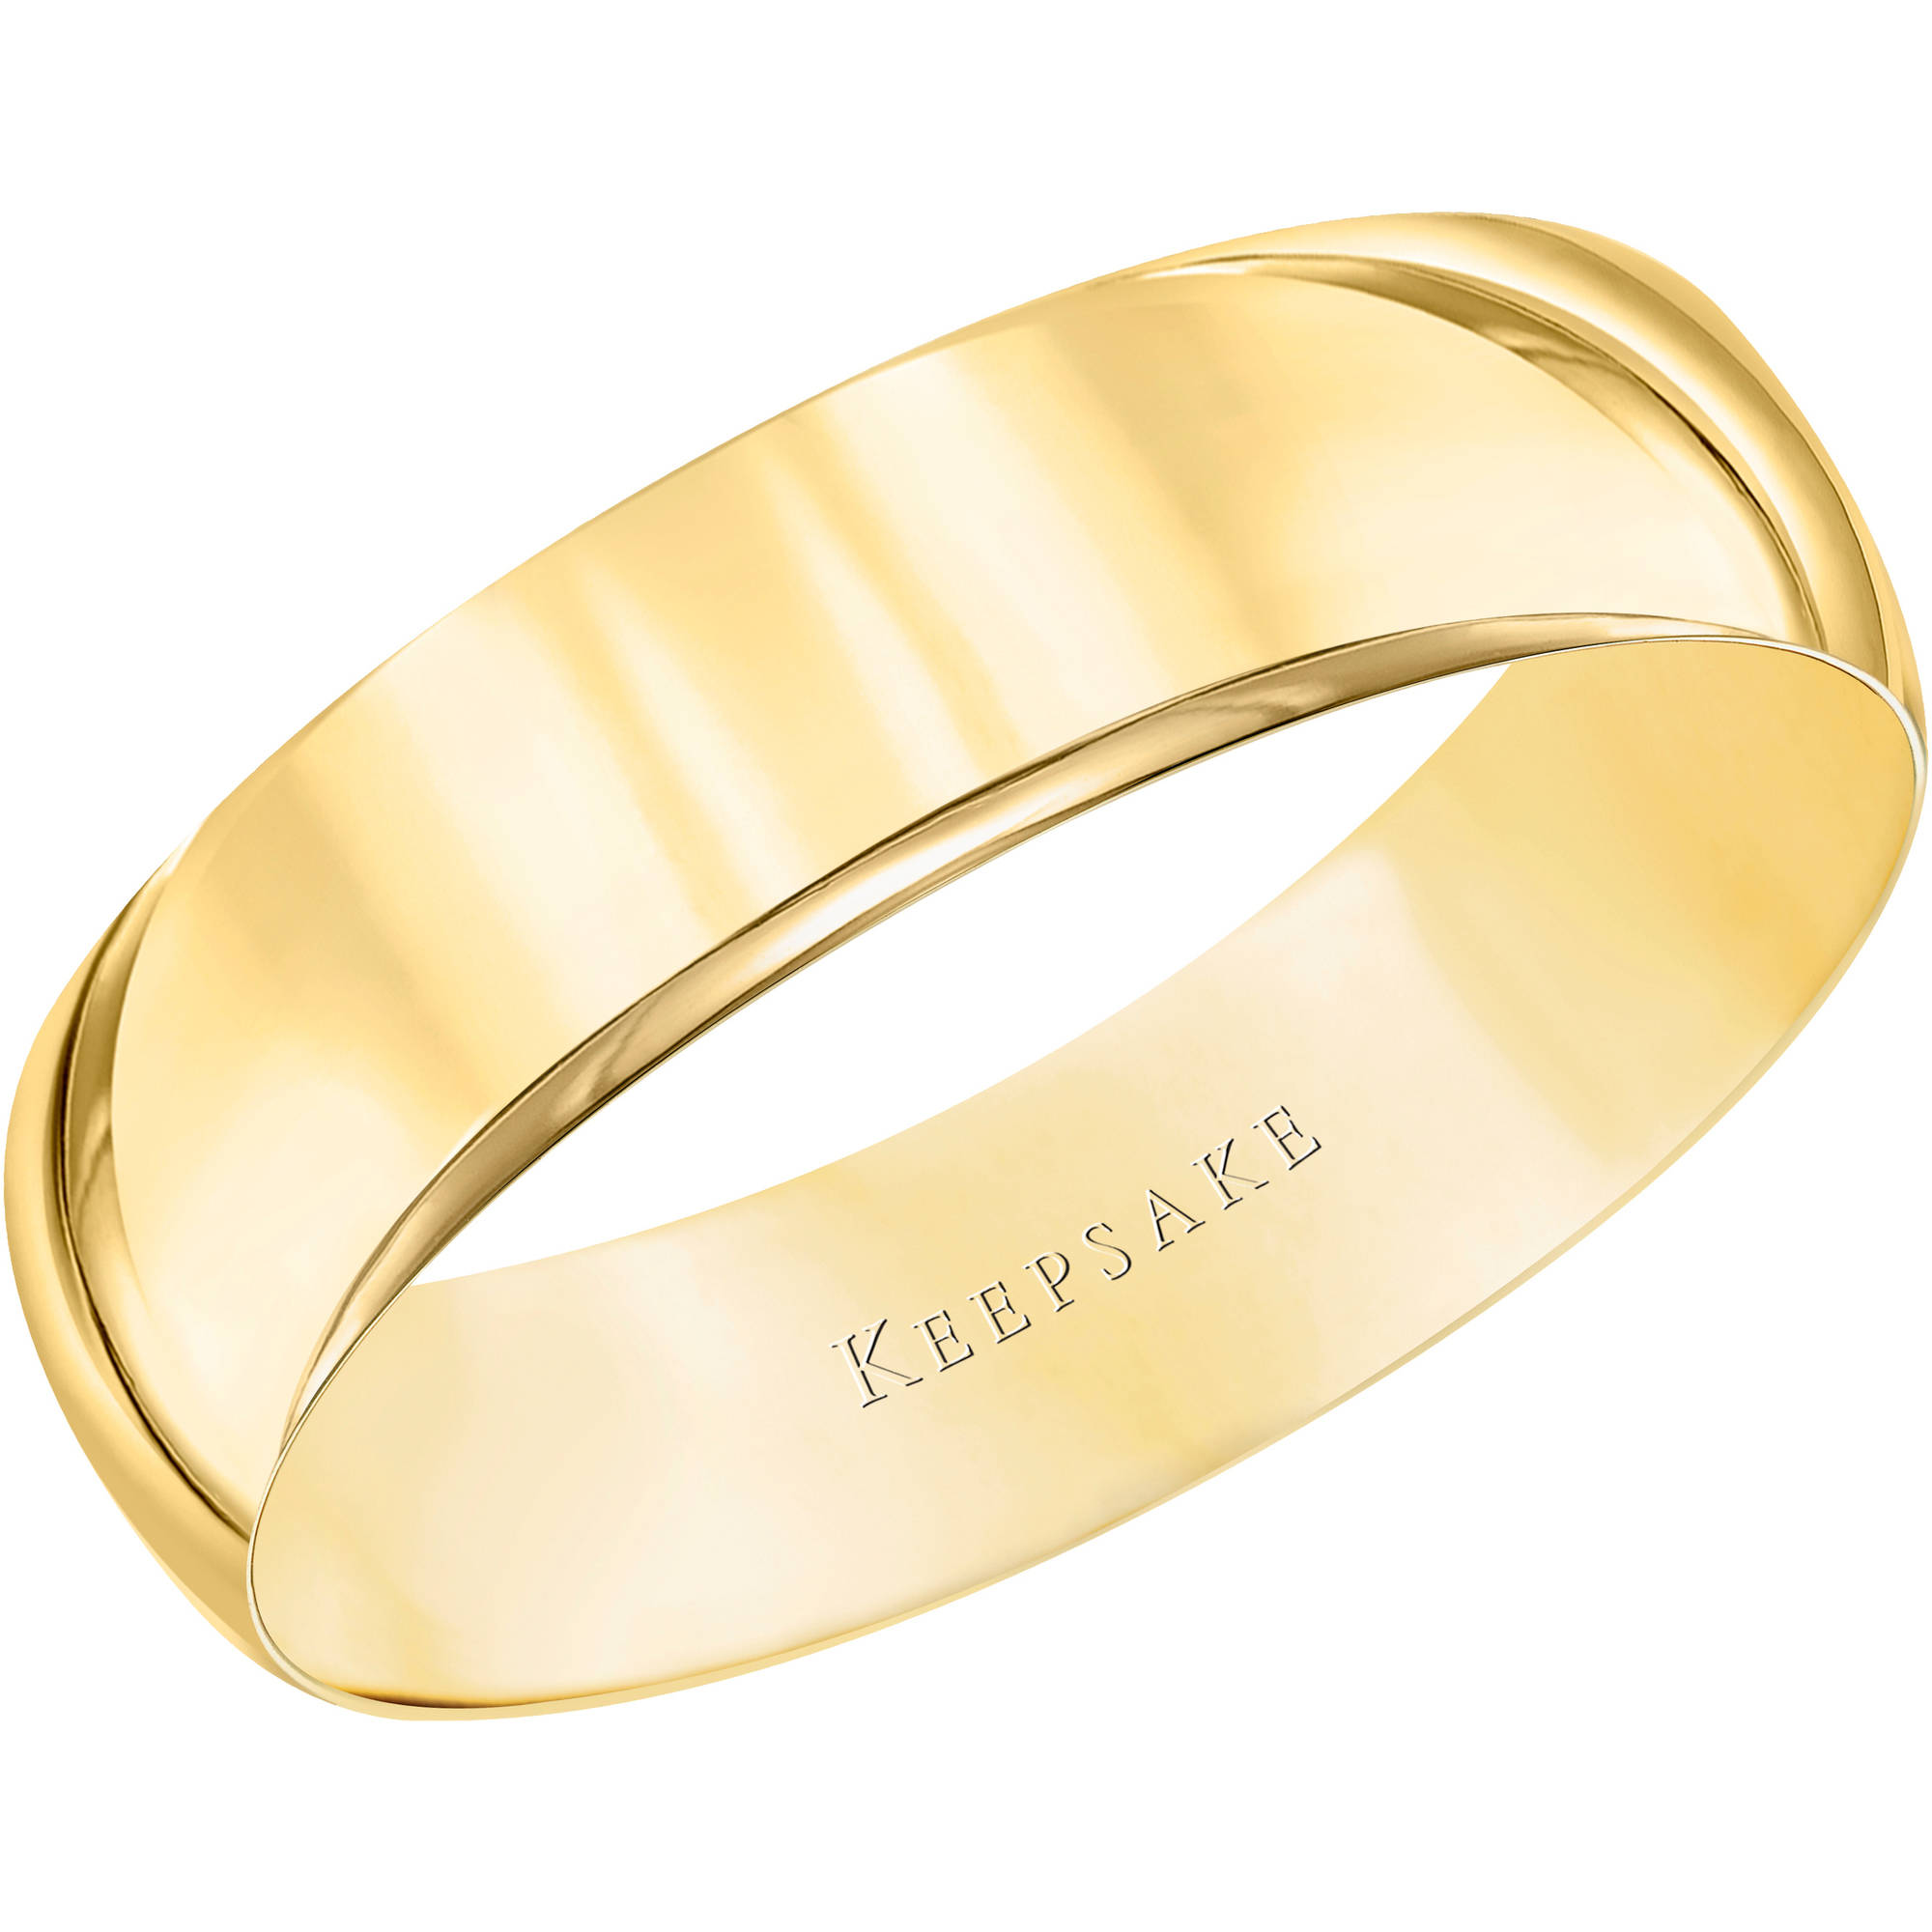 for wedding c designed bands rings patterned ladies and gold engraved polished yellow nl textured band rind